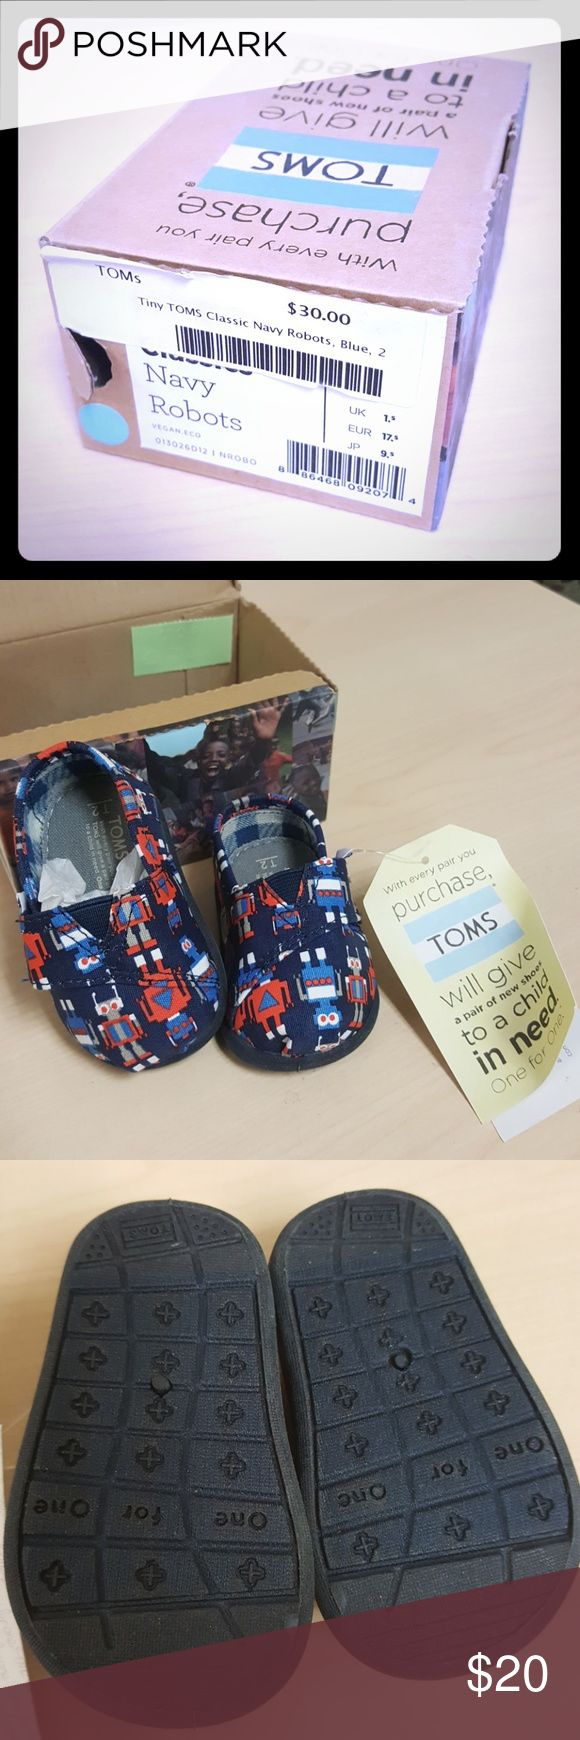 Tiny TOMS Navy Robots size 2 Tiny TOMS for a toddler in navy blue with robot print. Never used. NWT and box. Includes TOMS sticker and canvas bag. Toms Shoes Baby & Walker